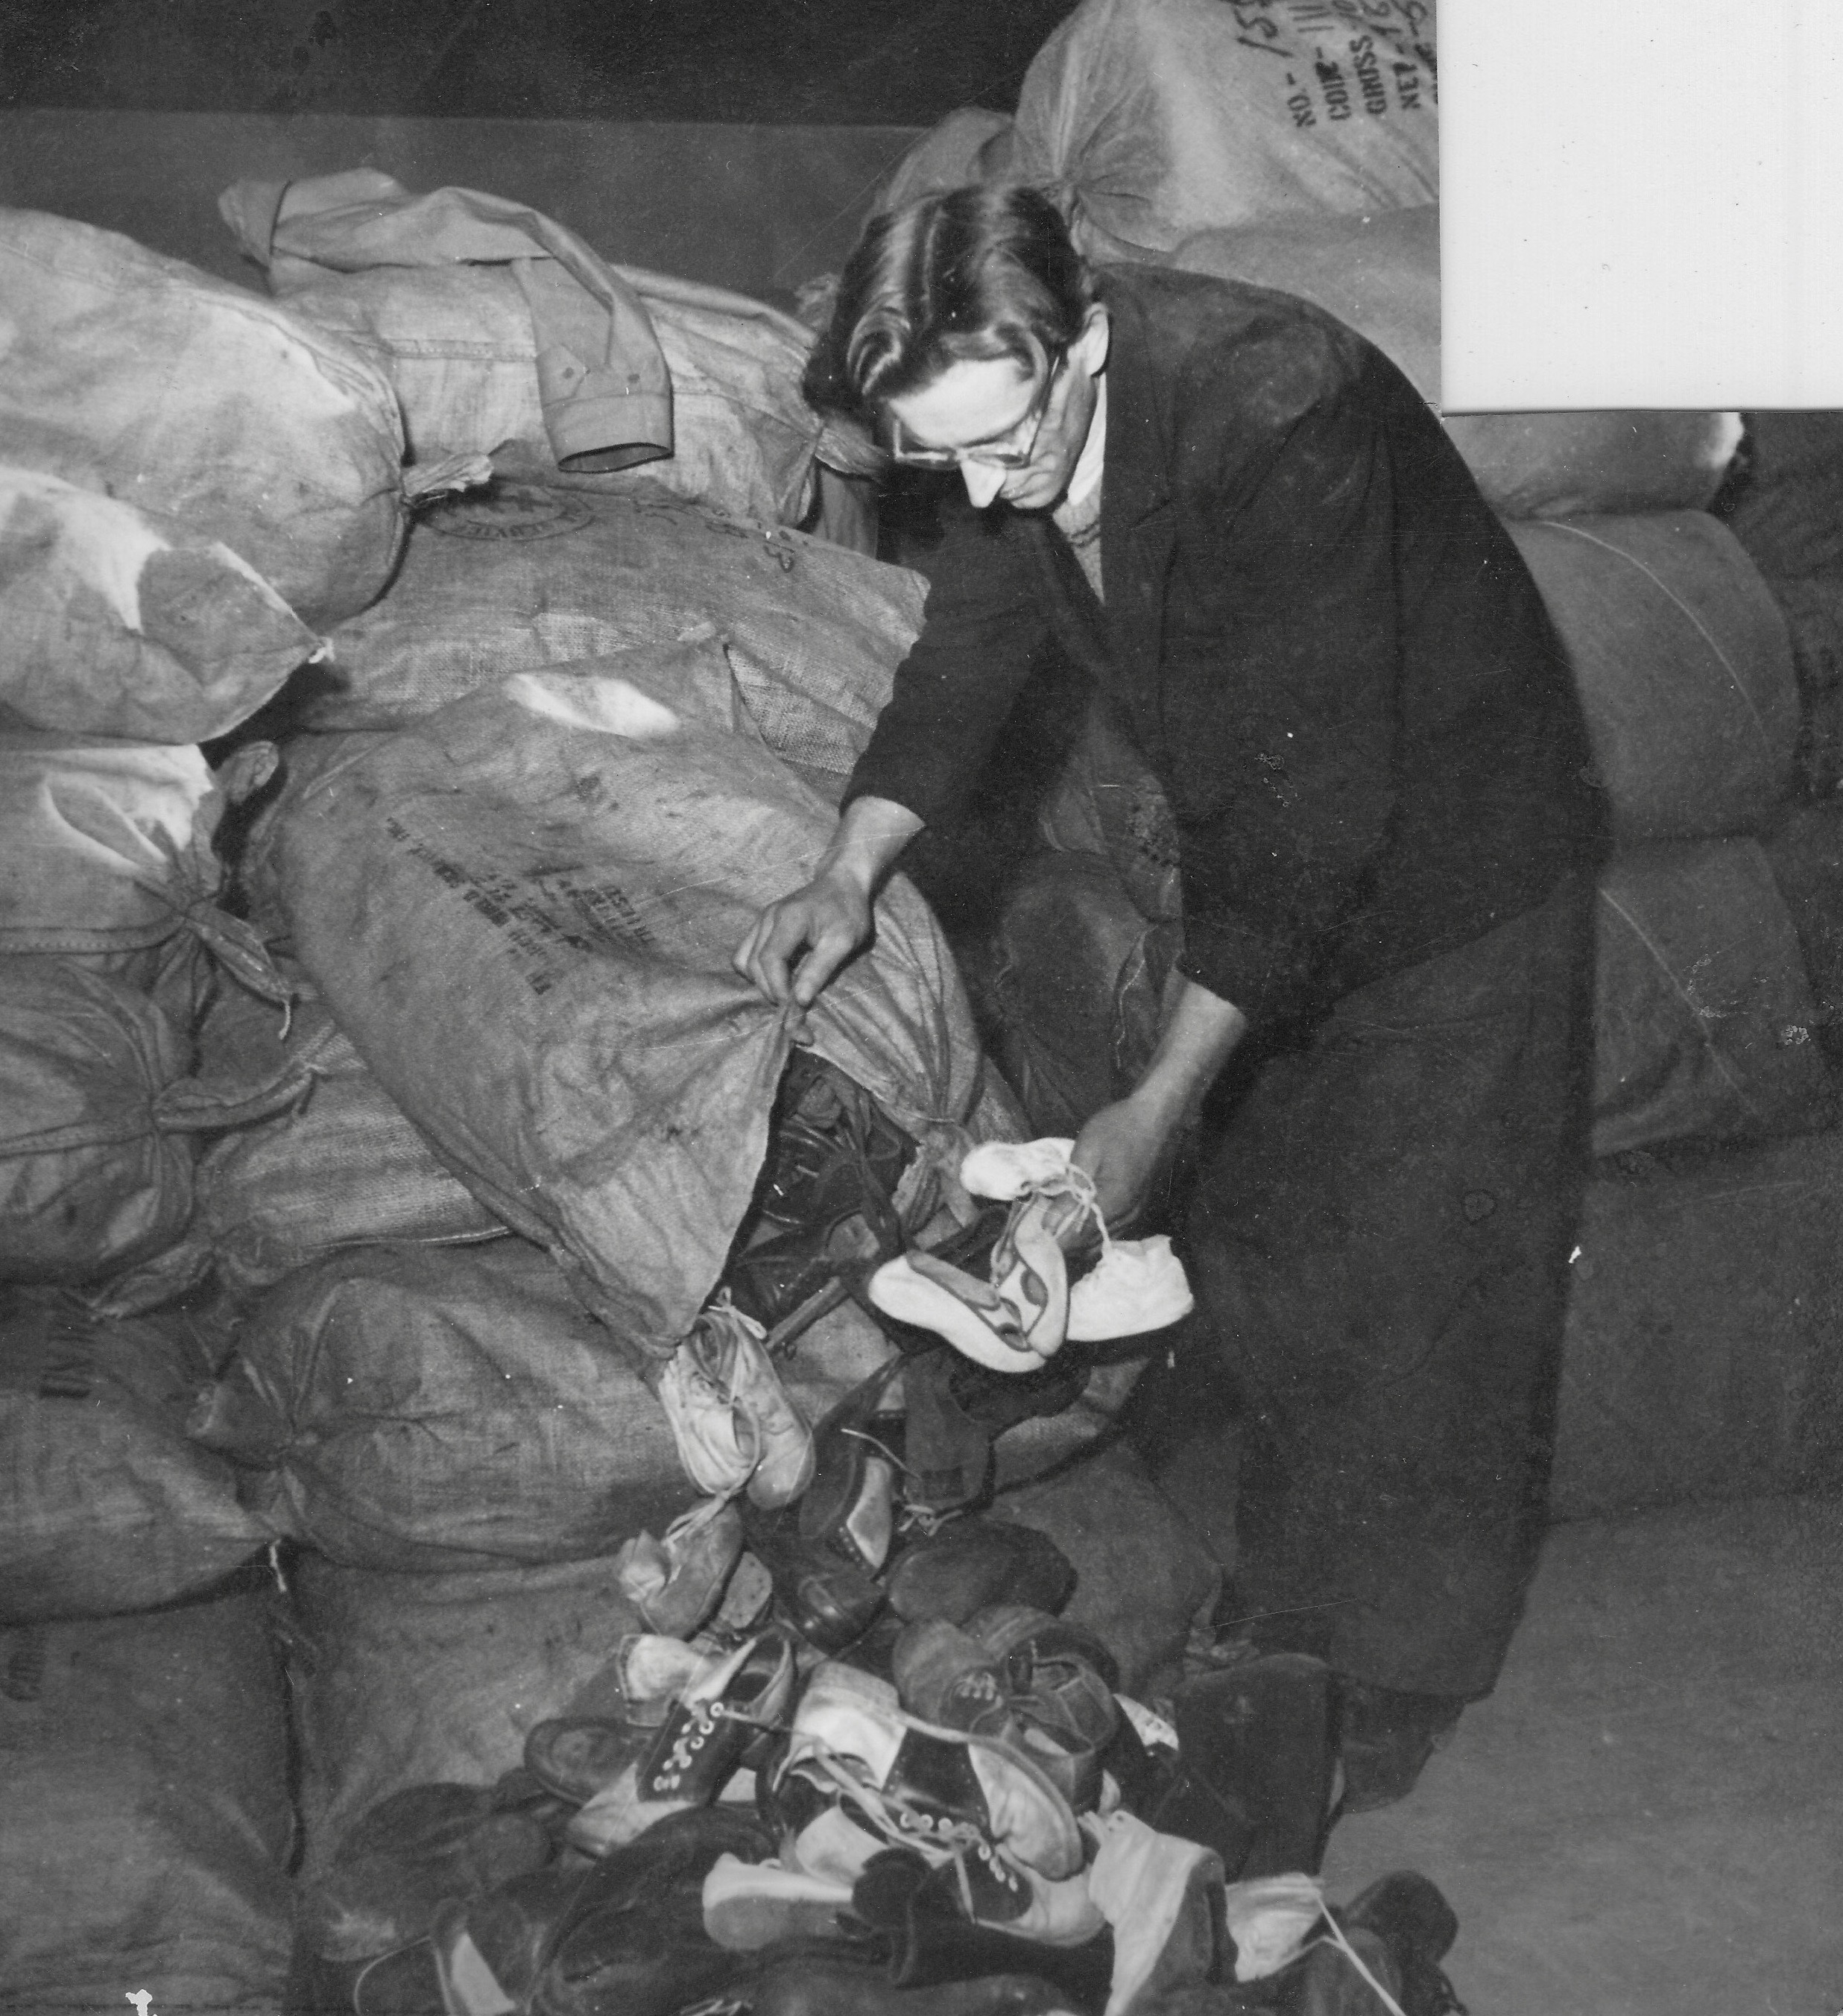 San Sabba, sorting through shoes from America 1950-51